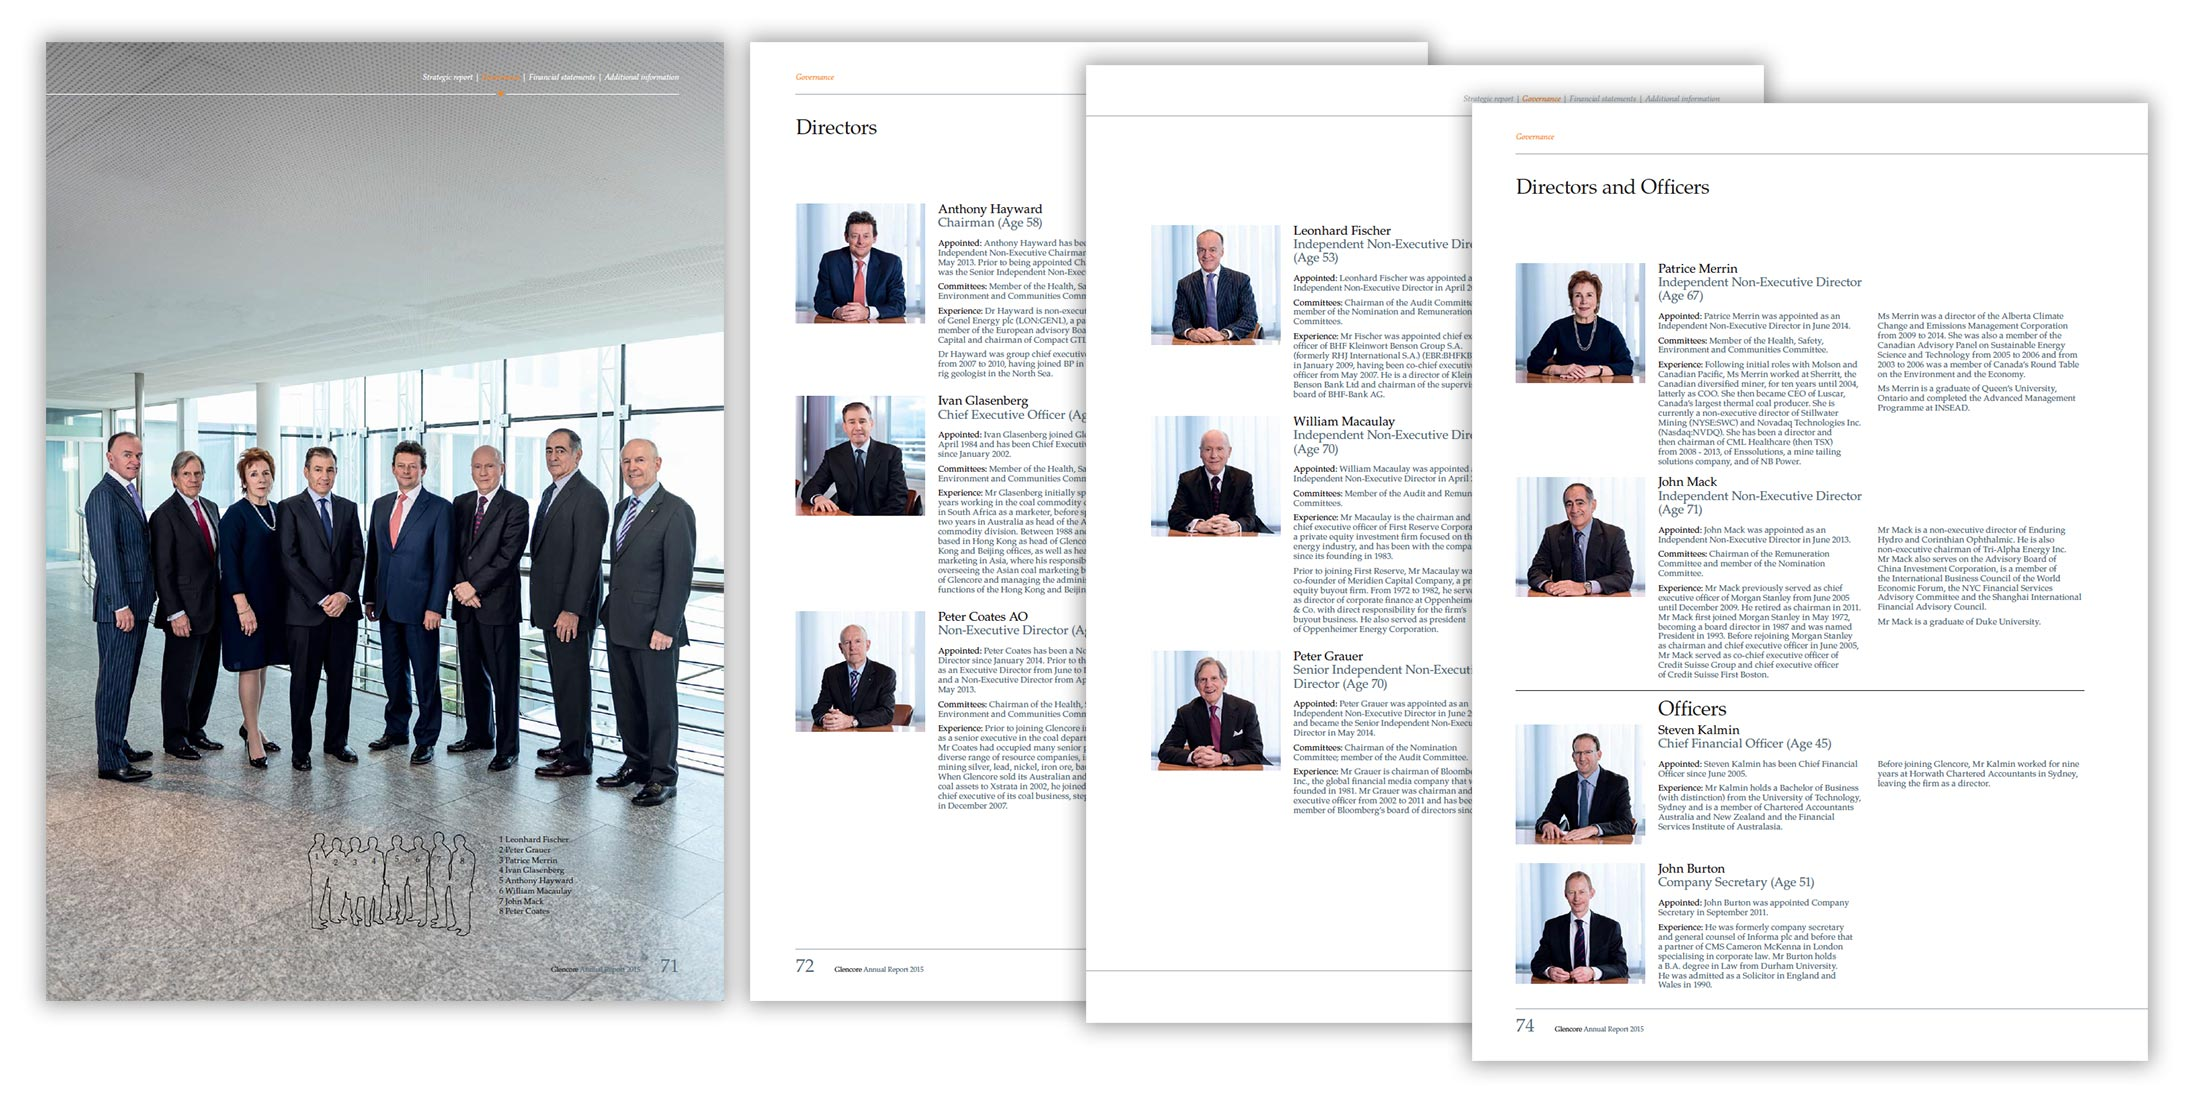 Annual Report Portrait Photography